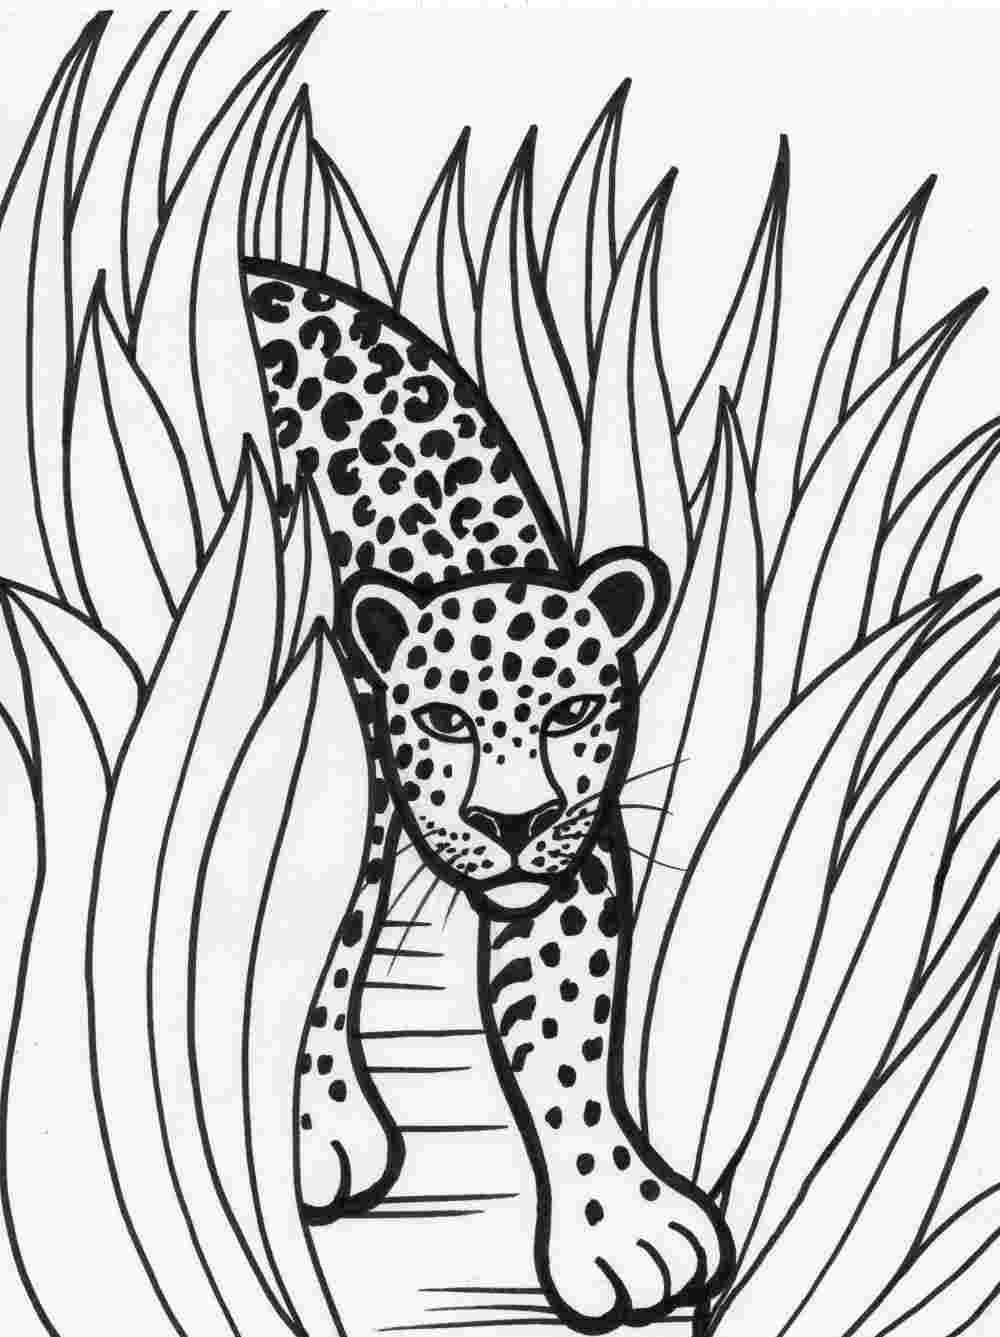 forest animal coloring pages forest animal coloring pages to download and print for free pages animal coloring forest